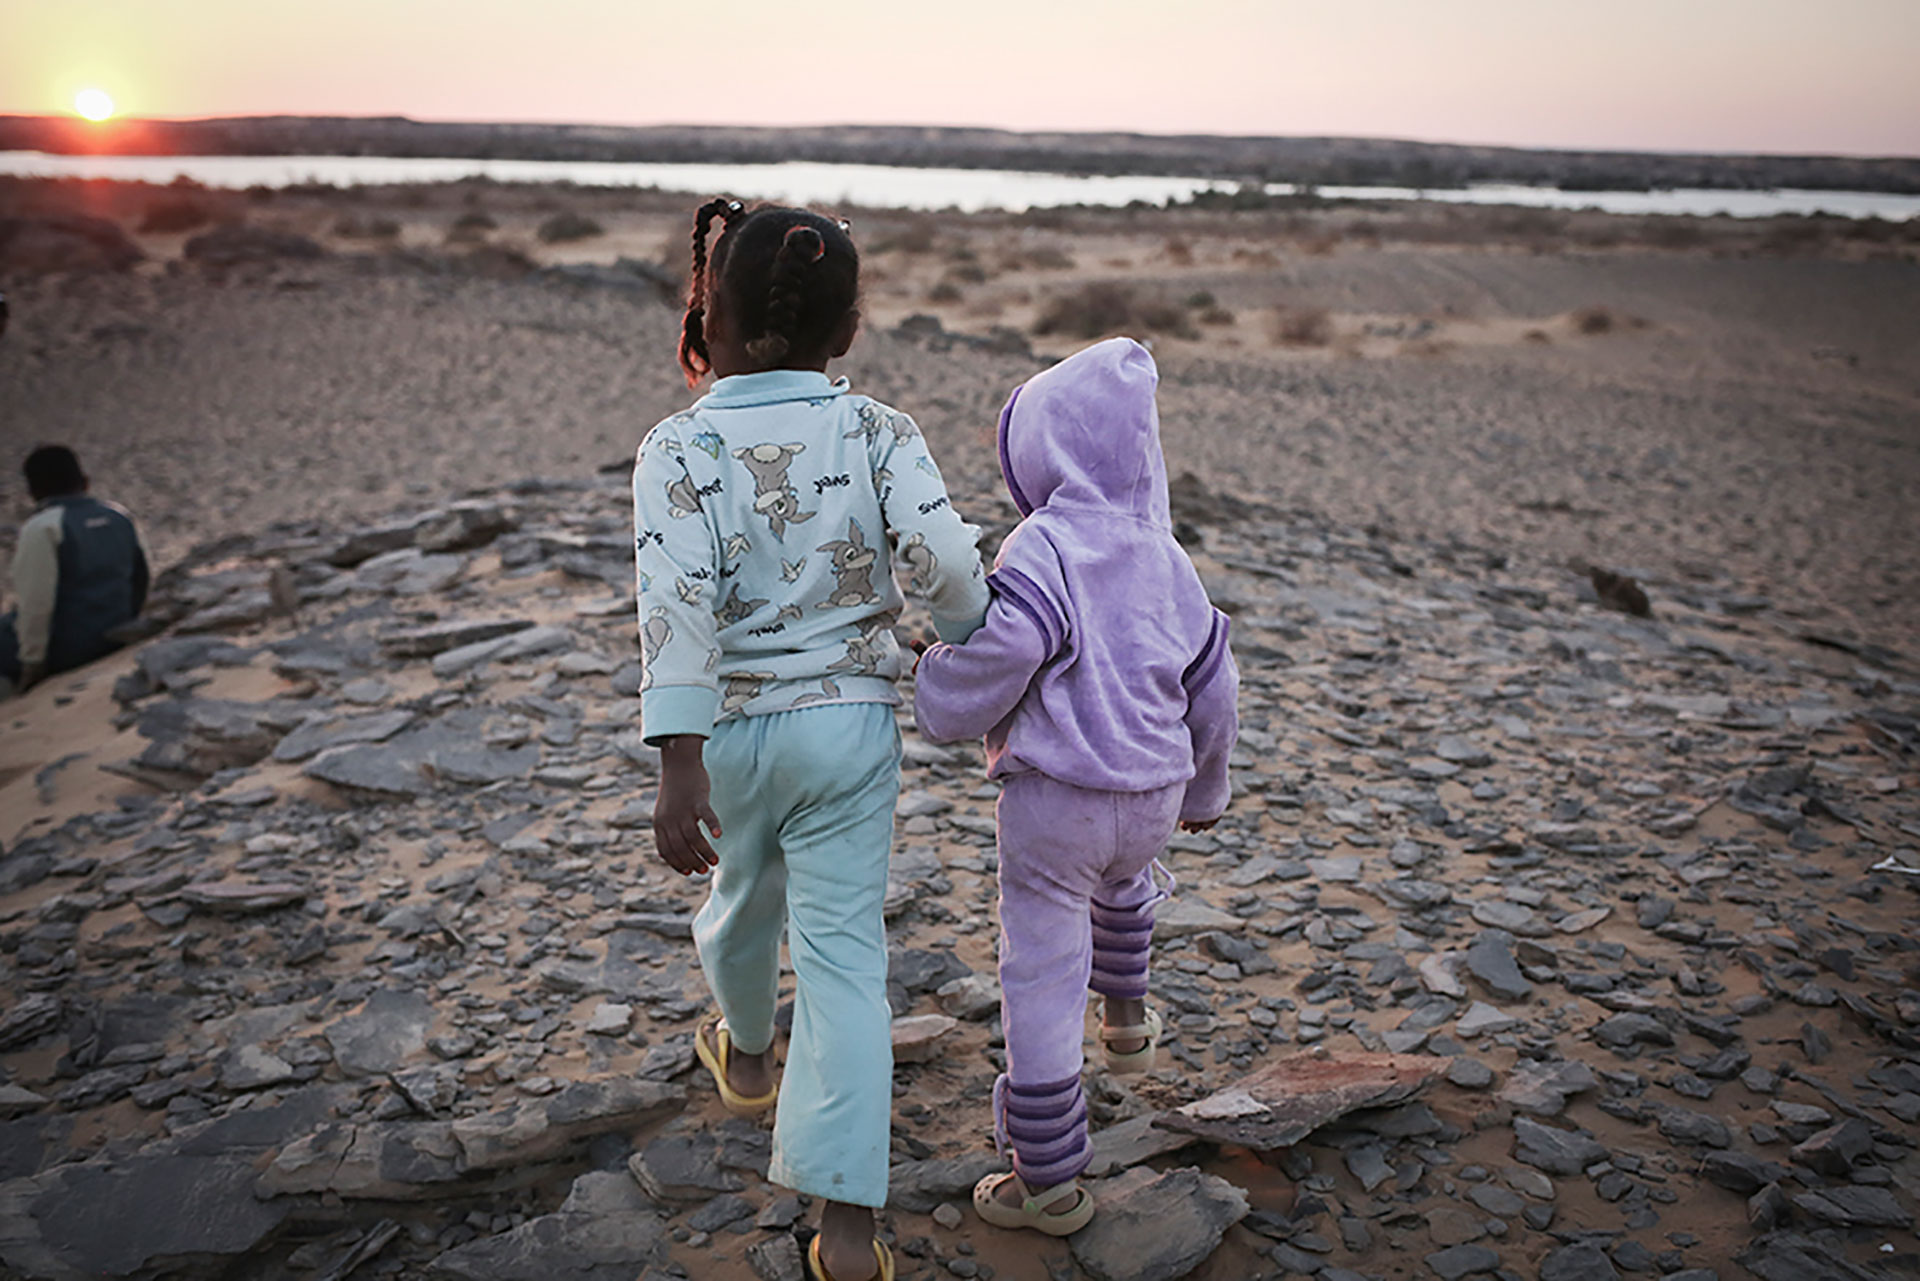 Children walk to the edge of the Nile at sunset, where Nubians used to have their homes, but no longer.